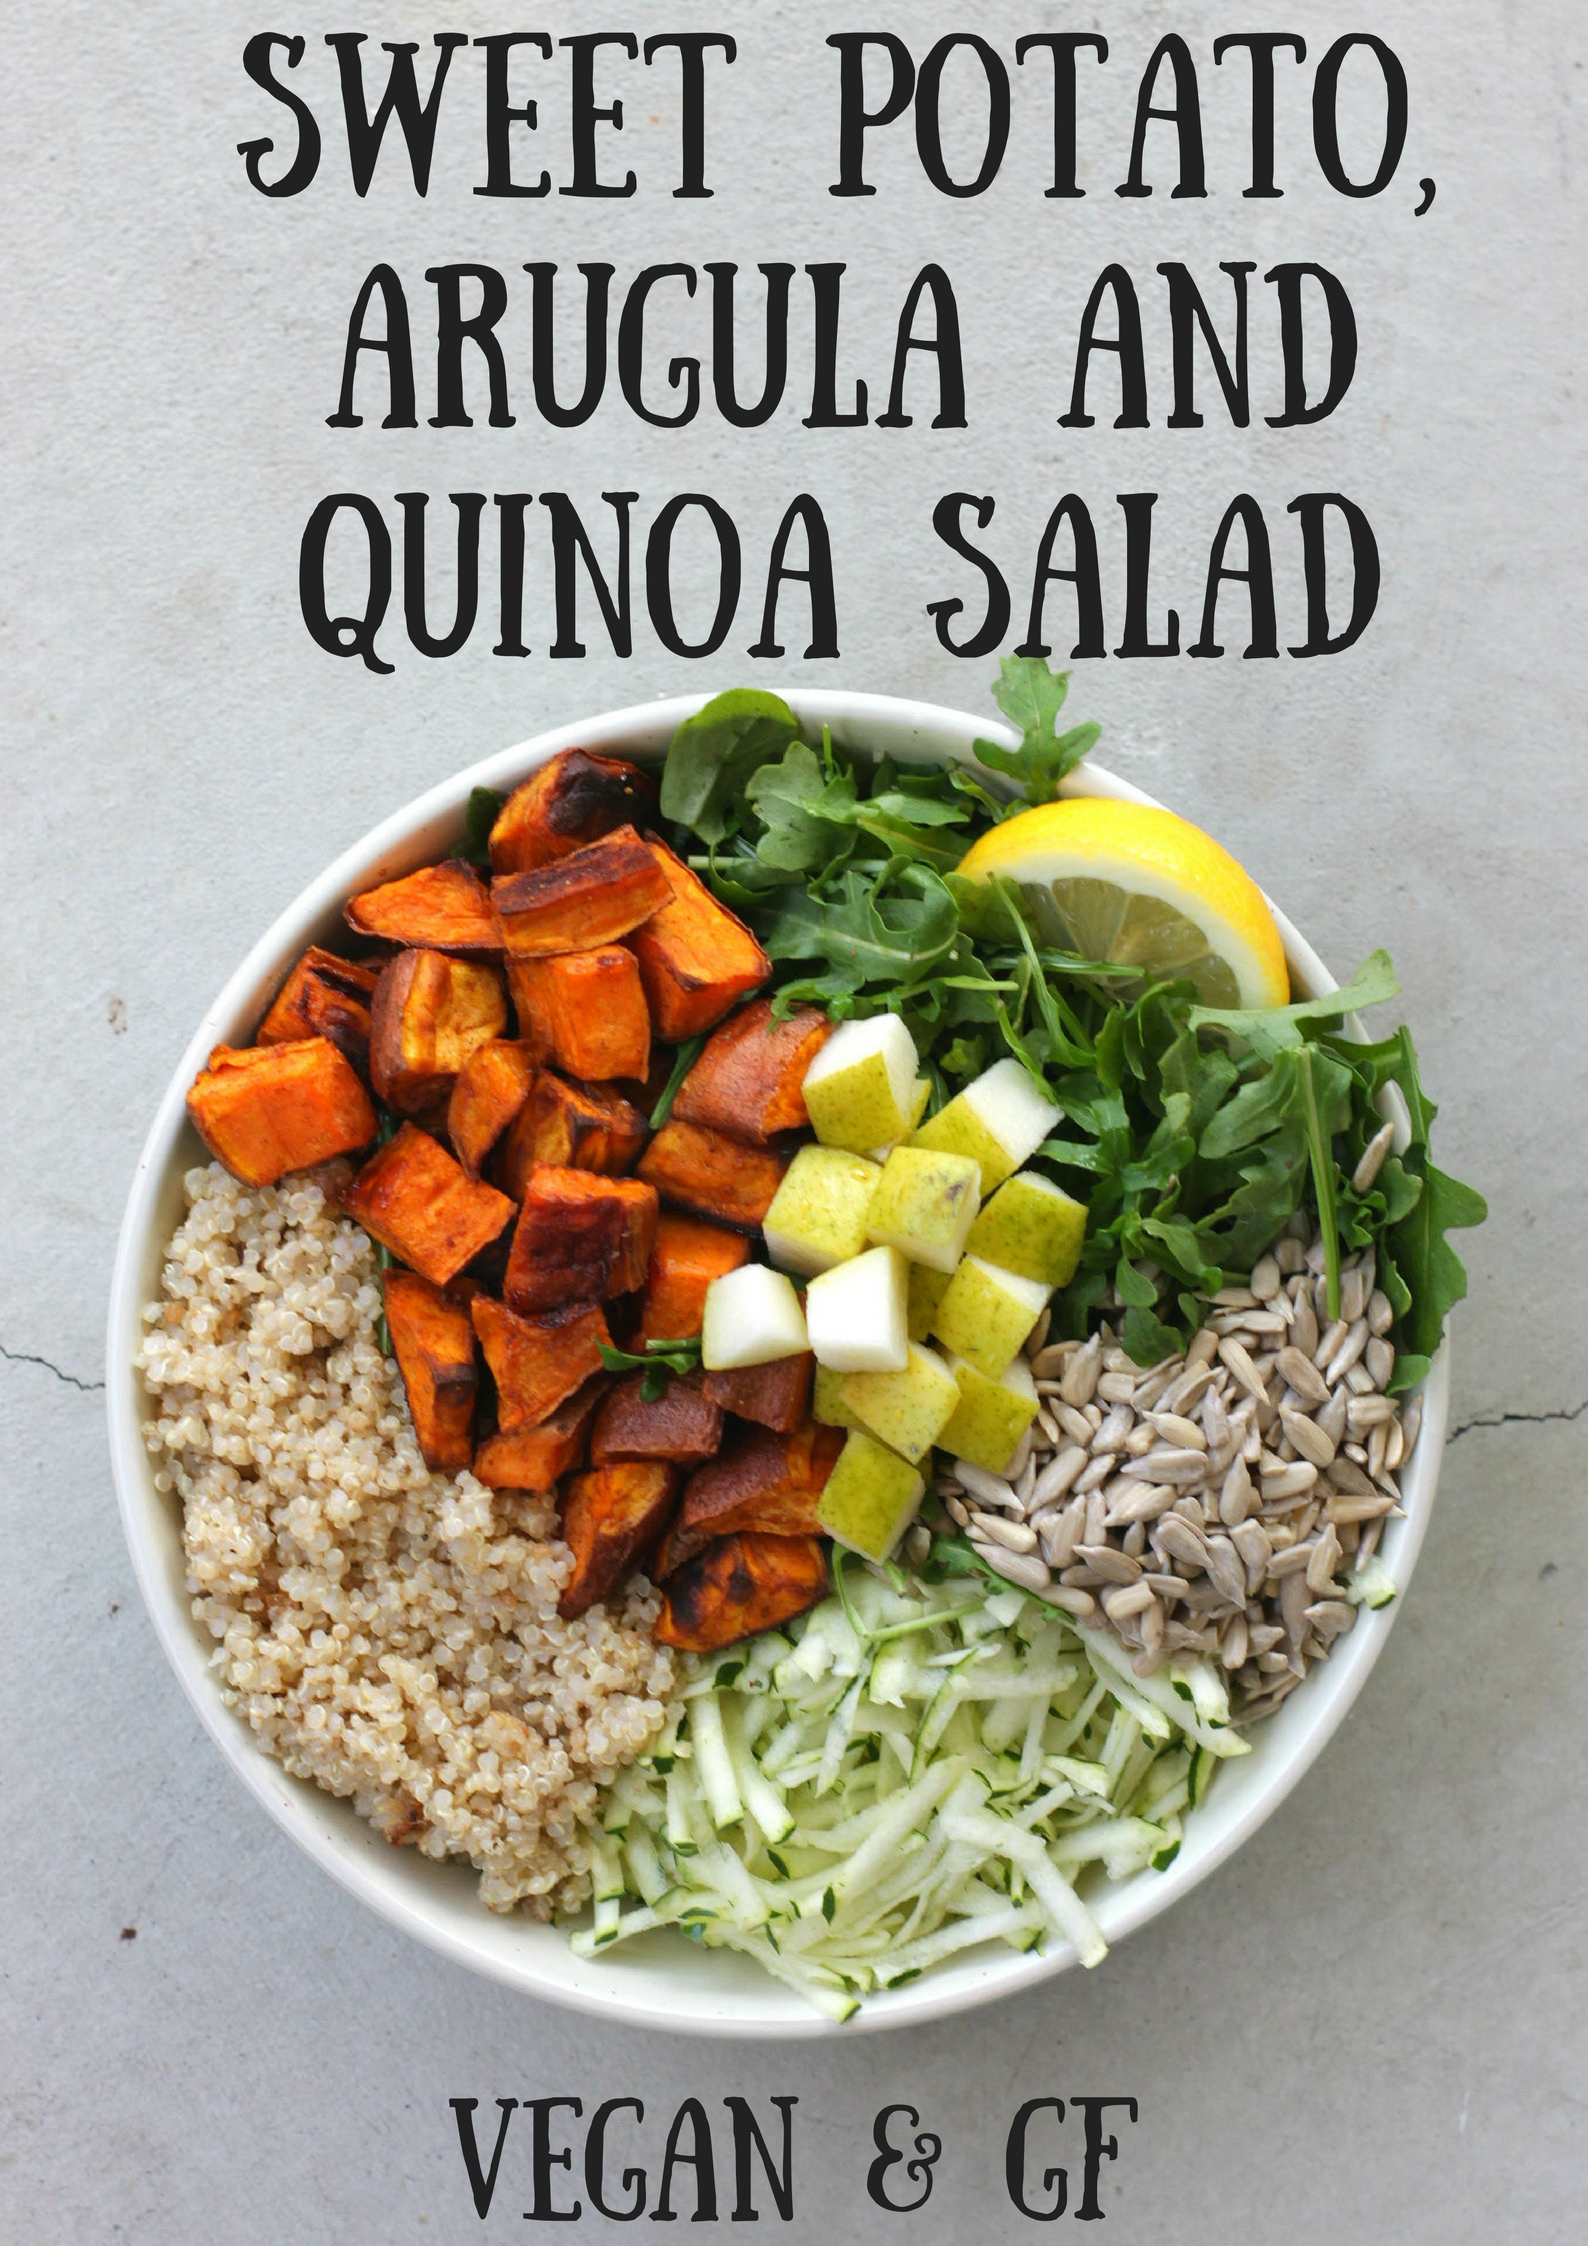 SWEET POTATO, ARUGULA AND QUINOA SALAD